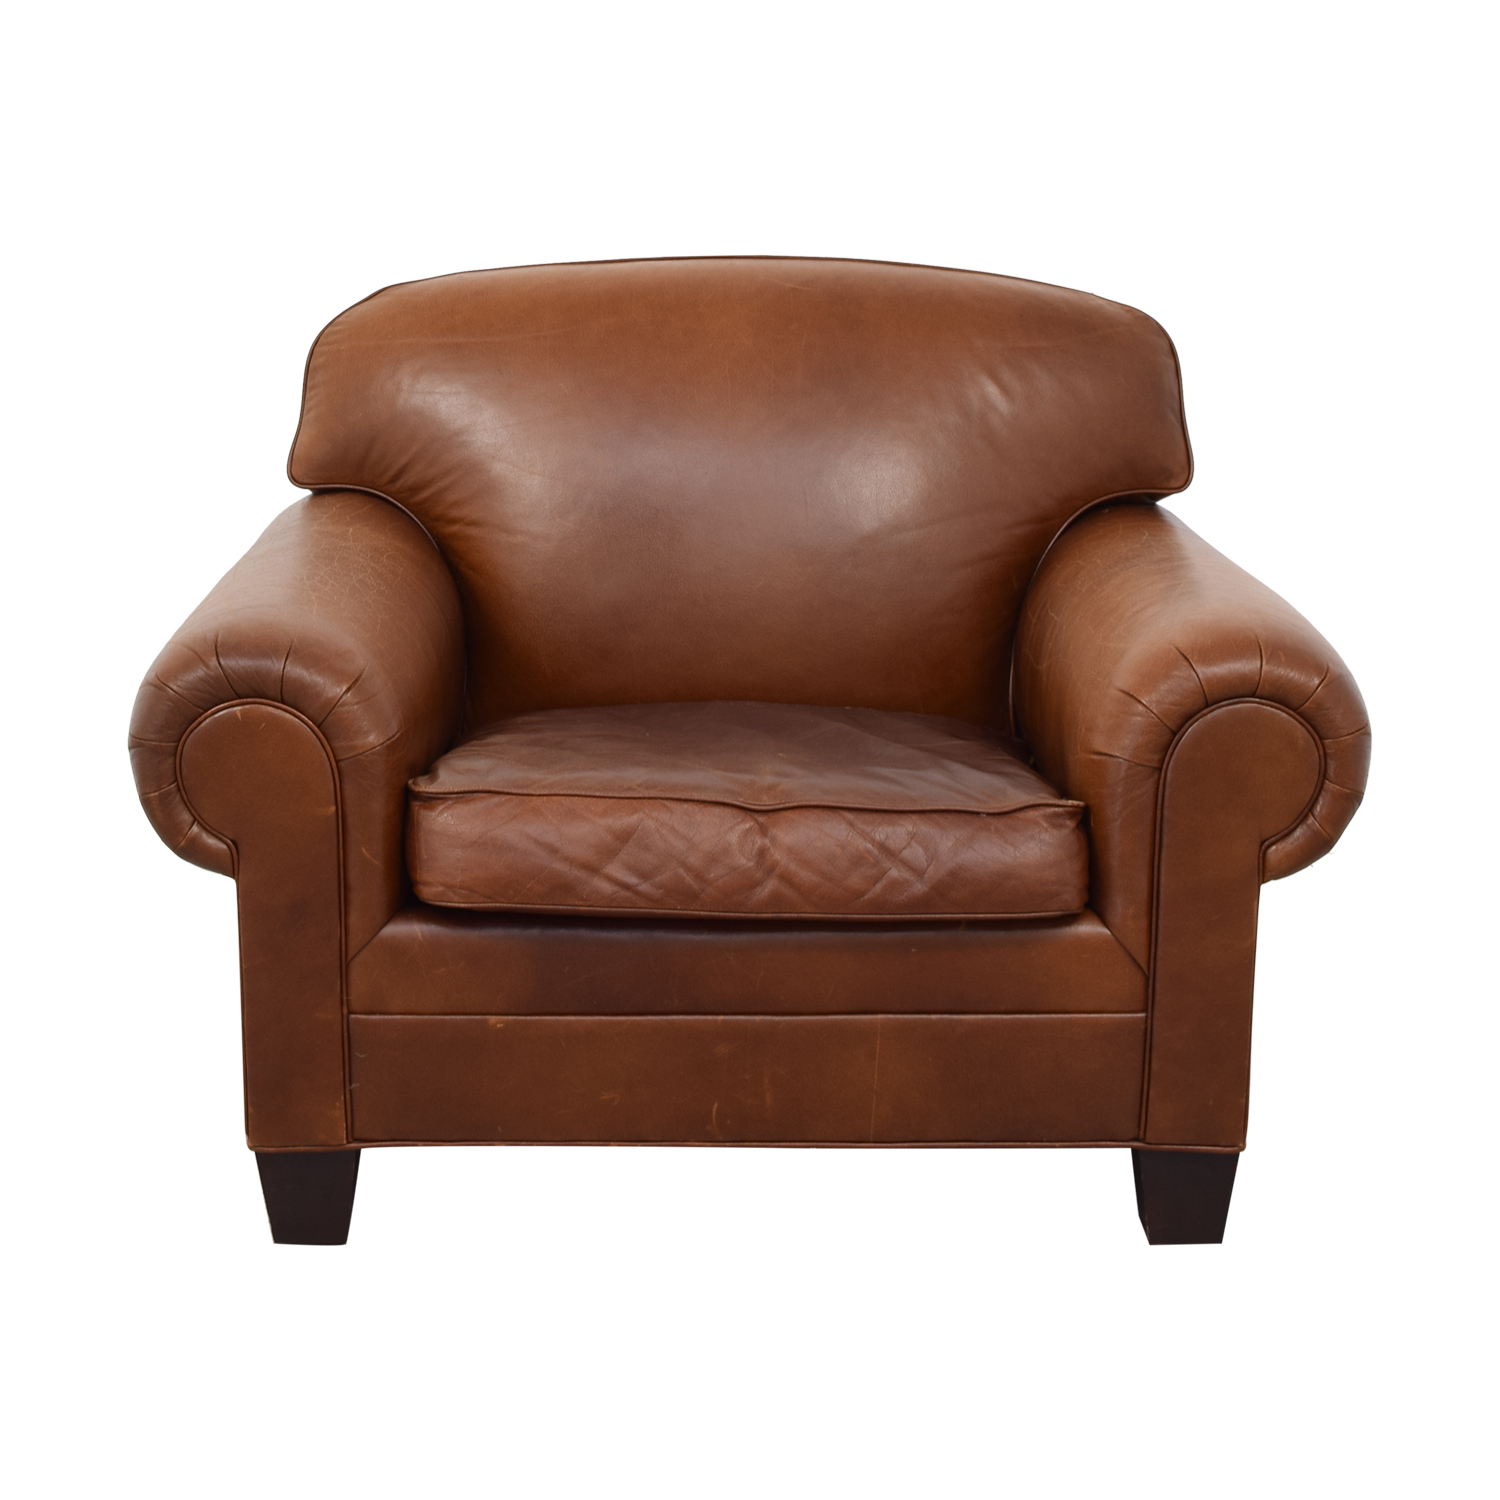 Ralph Lauren Home Ralph Lauren Accent Chair price